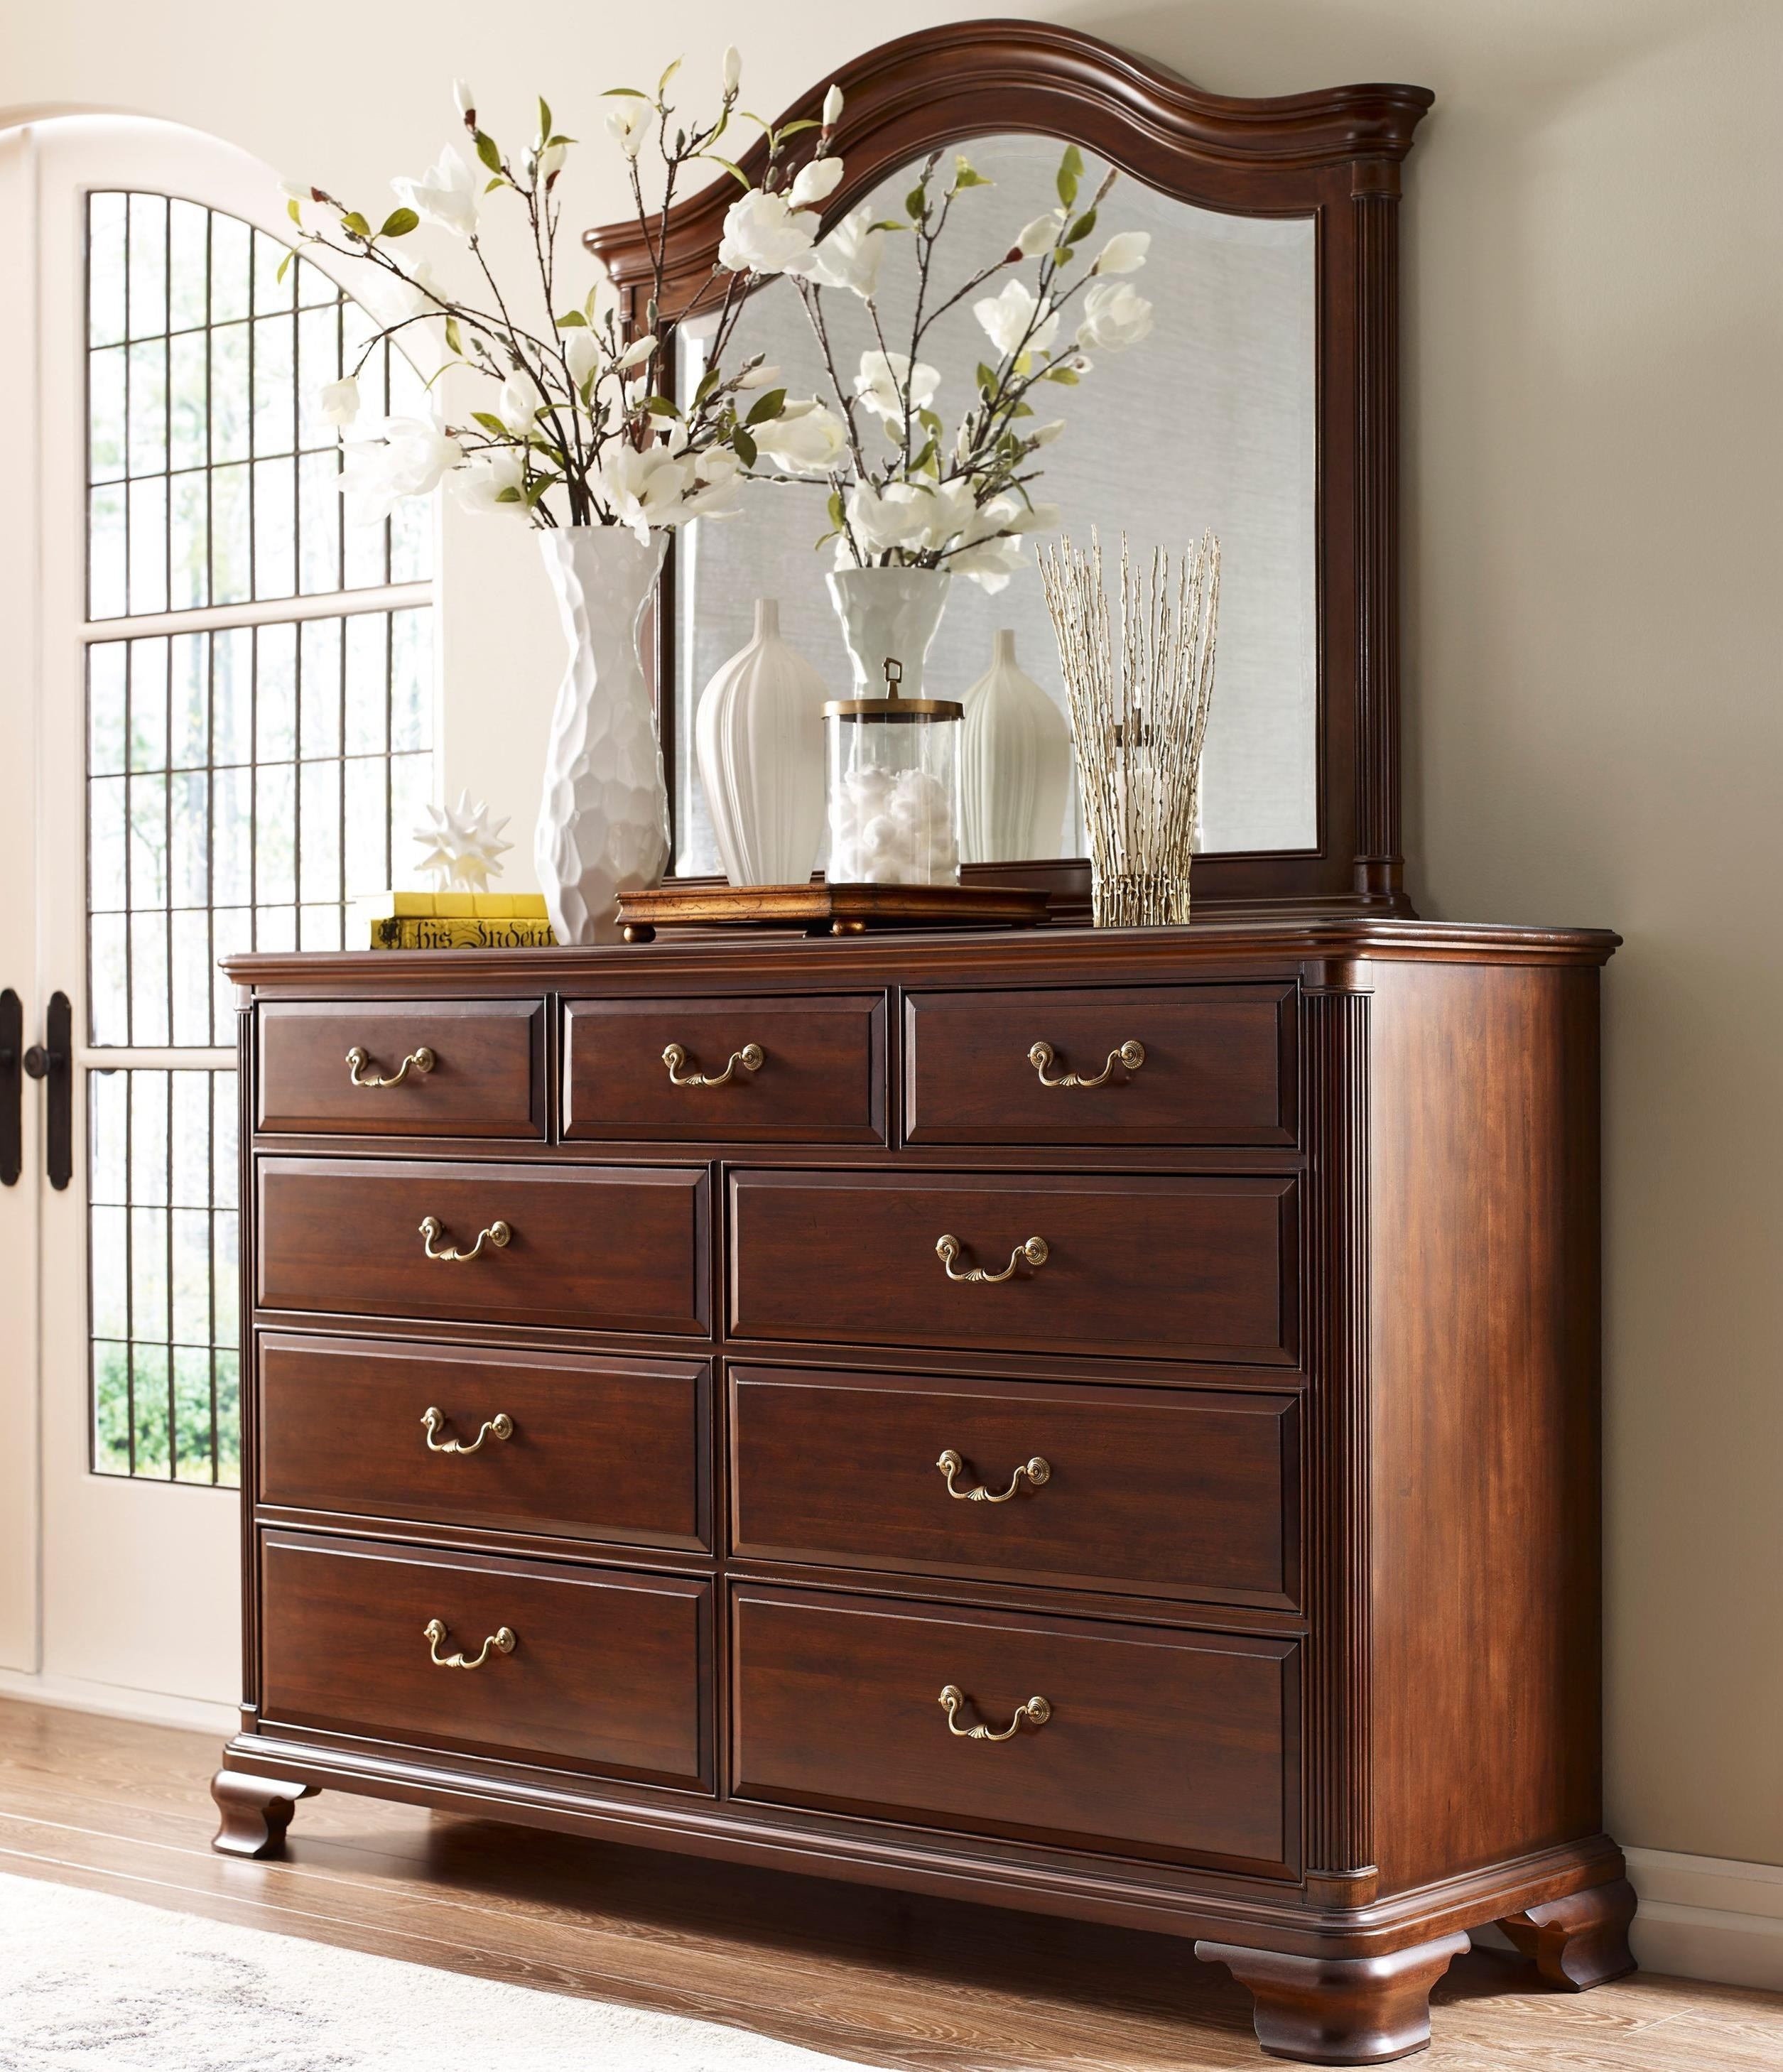 Hadleigh Dresser and Mirror Set by Kincaid Furniture at Johnny Janosik